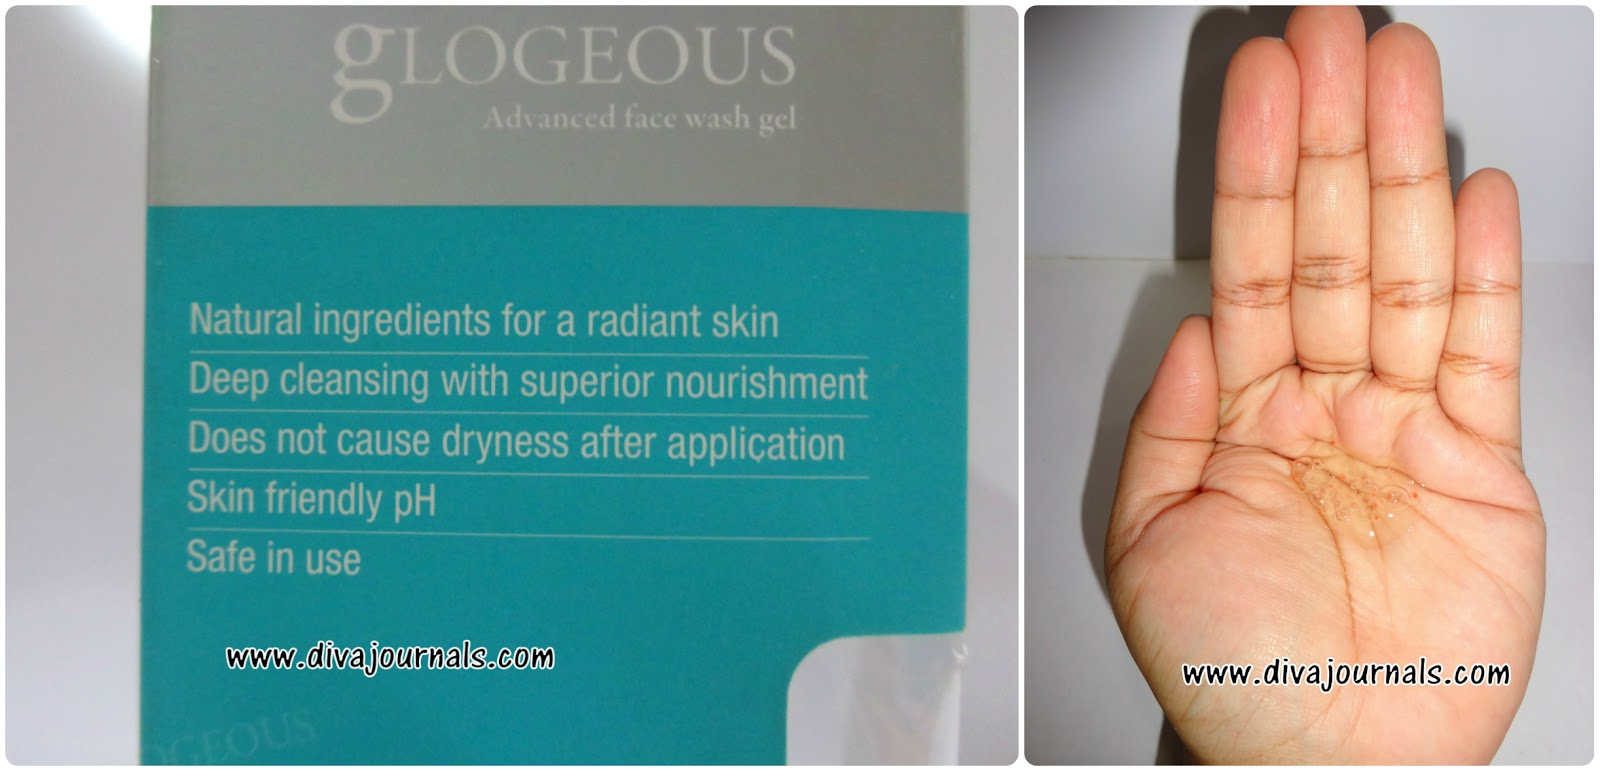 Glogeous Advanced Face wash Gel Review